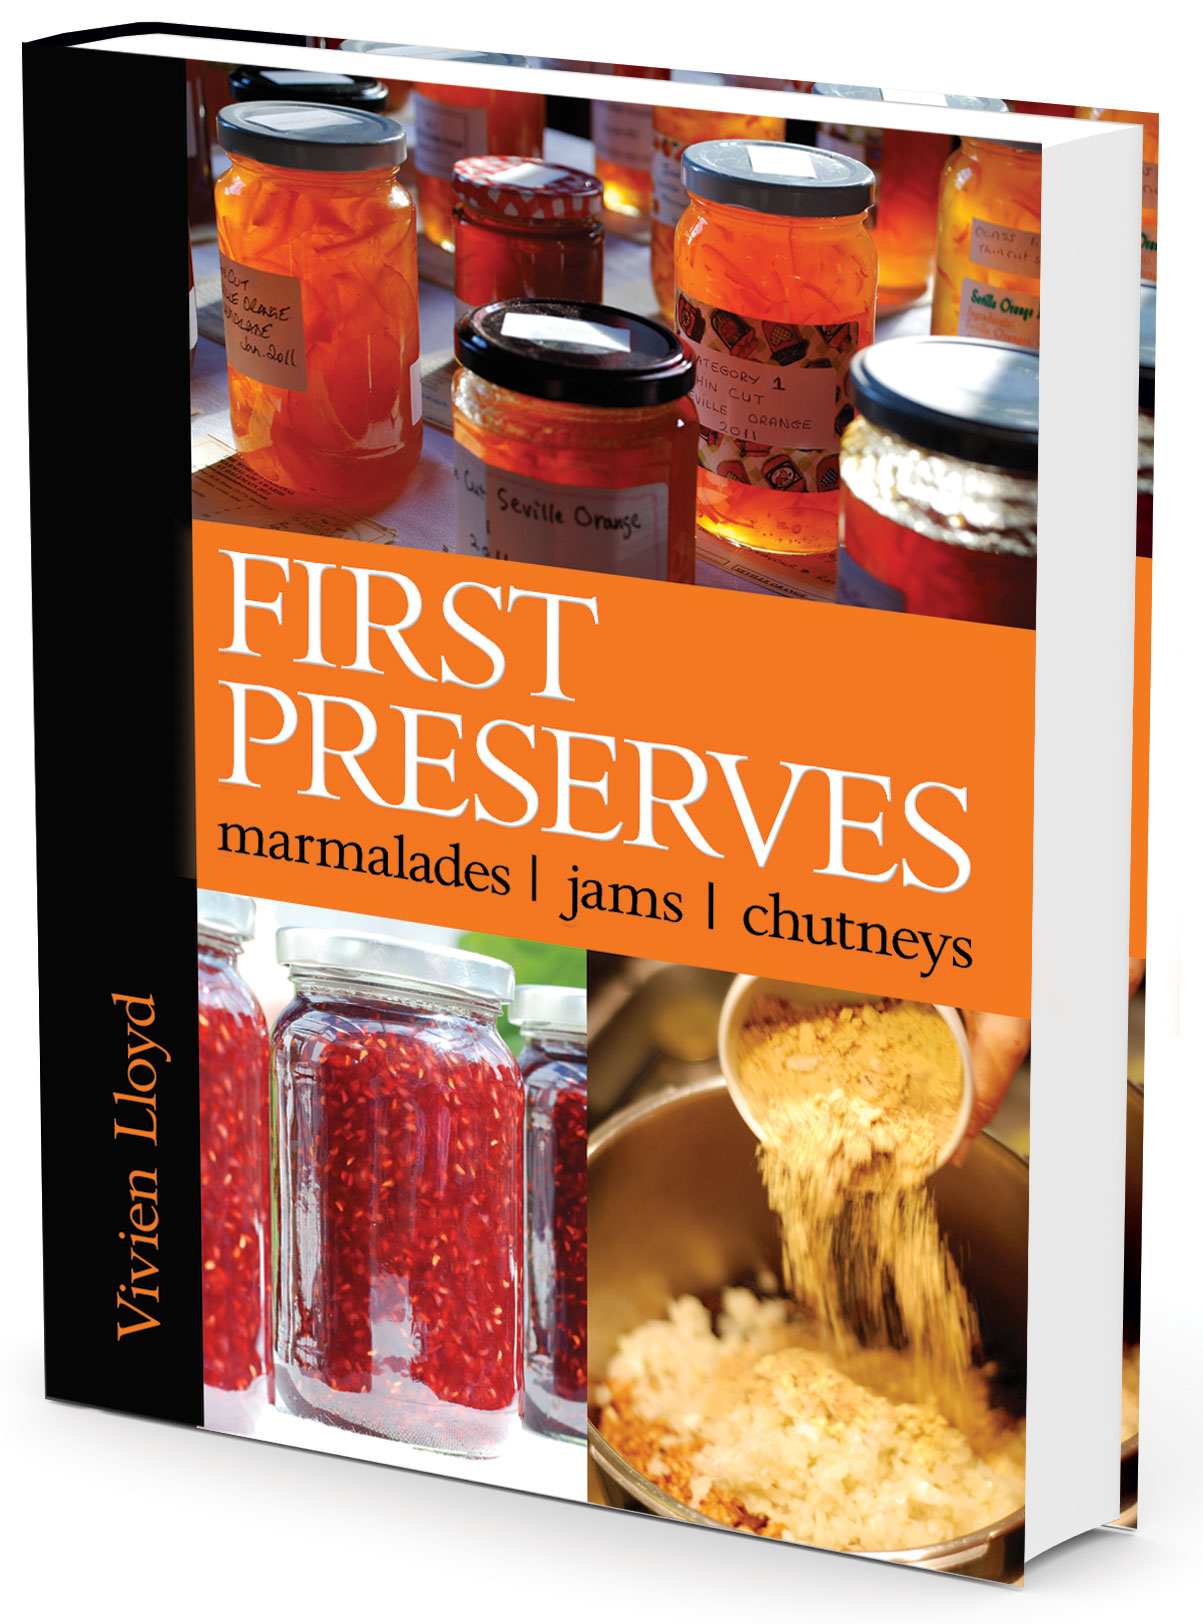 Vivien lloyd First Preserves